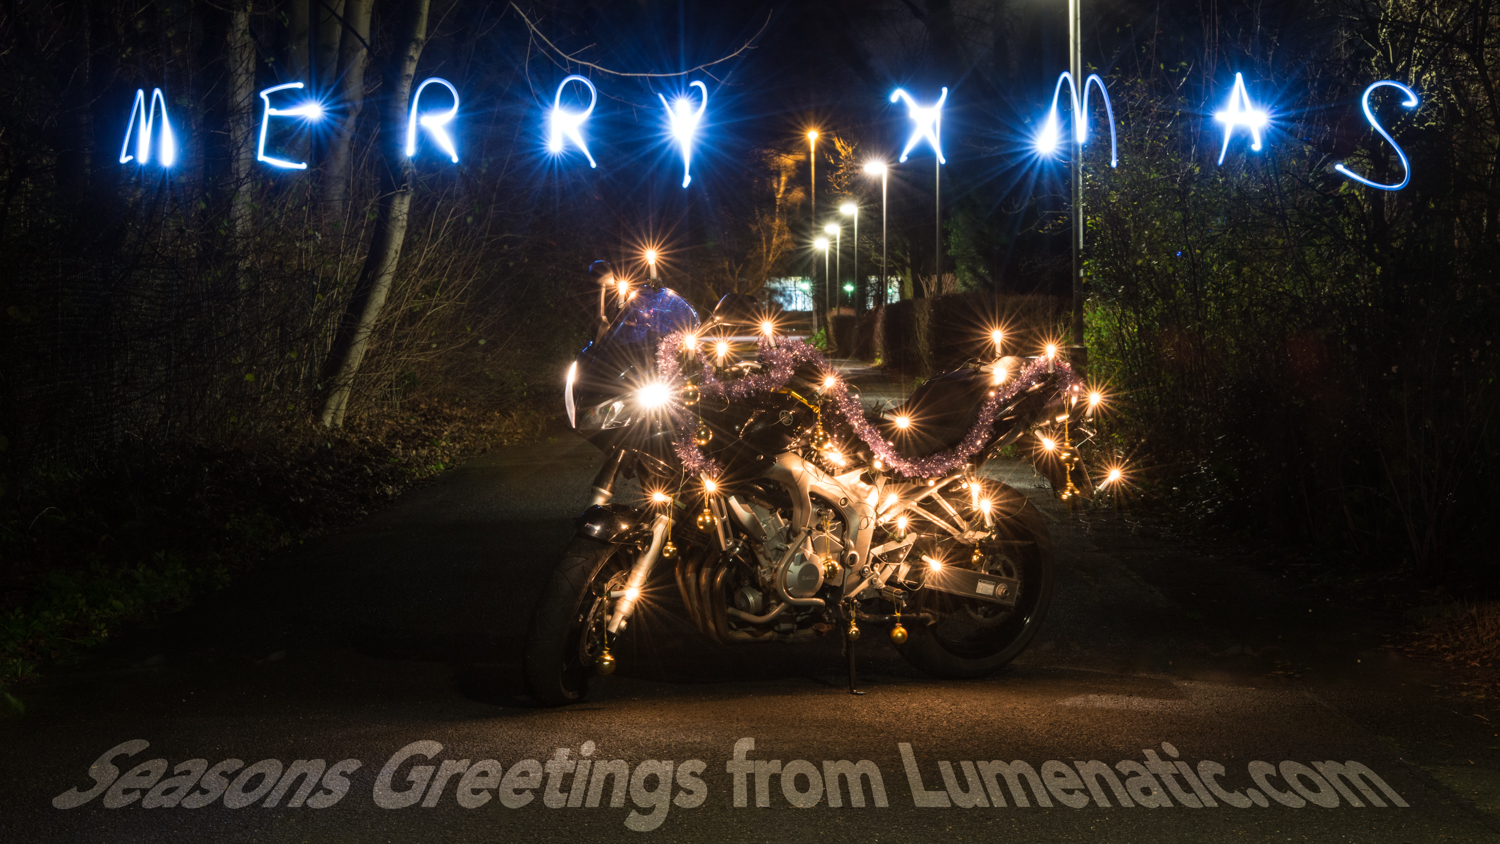 Seasons Greetings from lumenatic.com